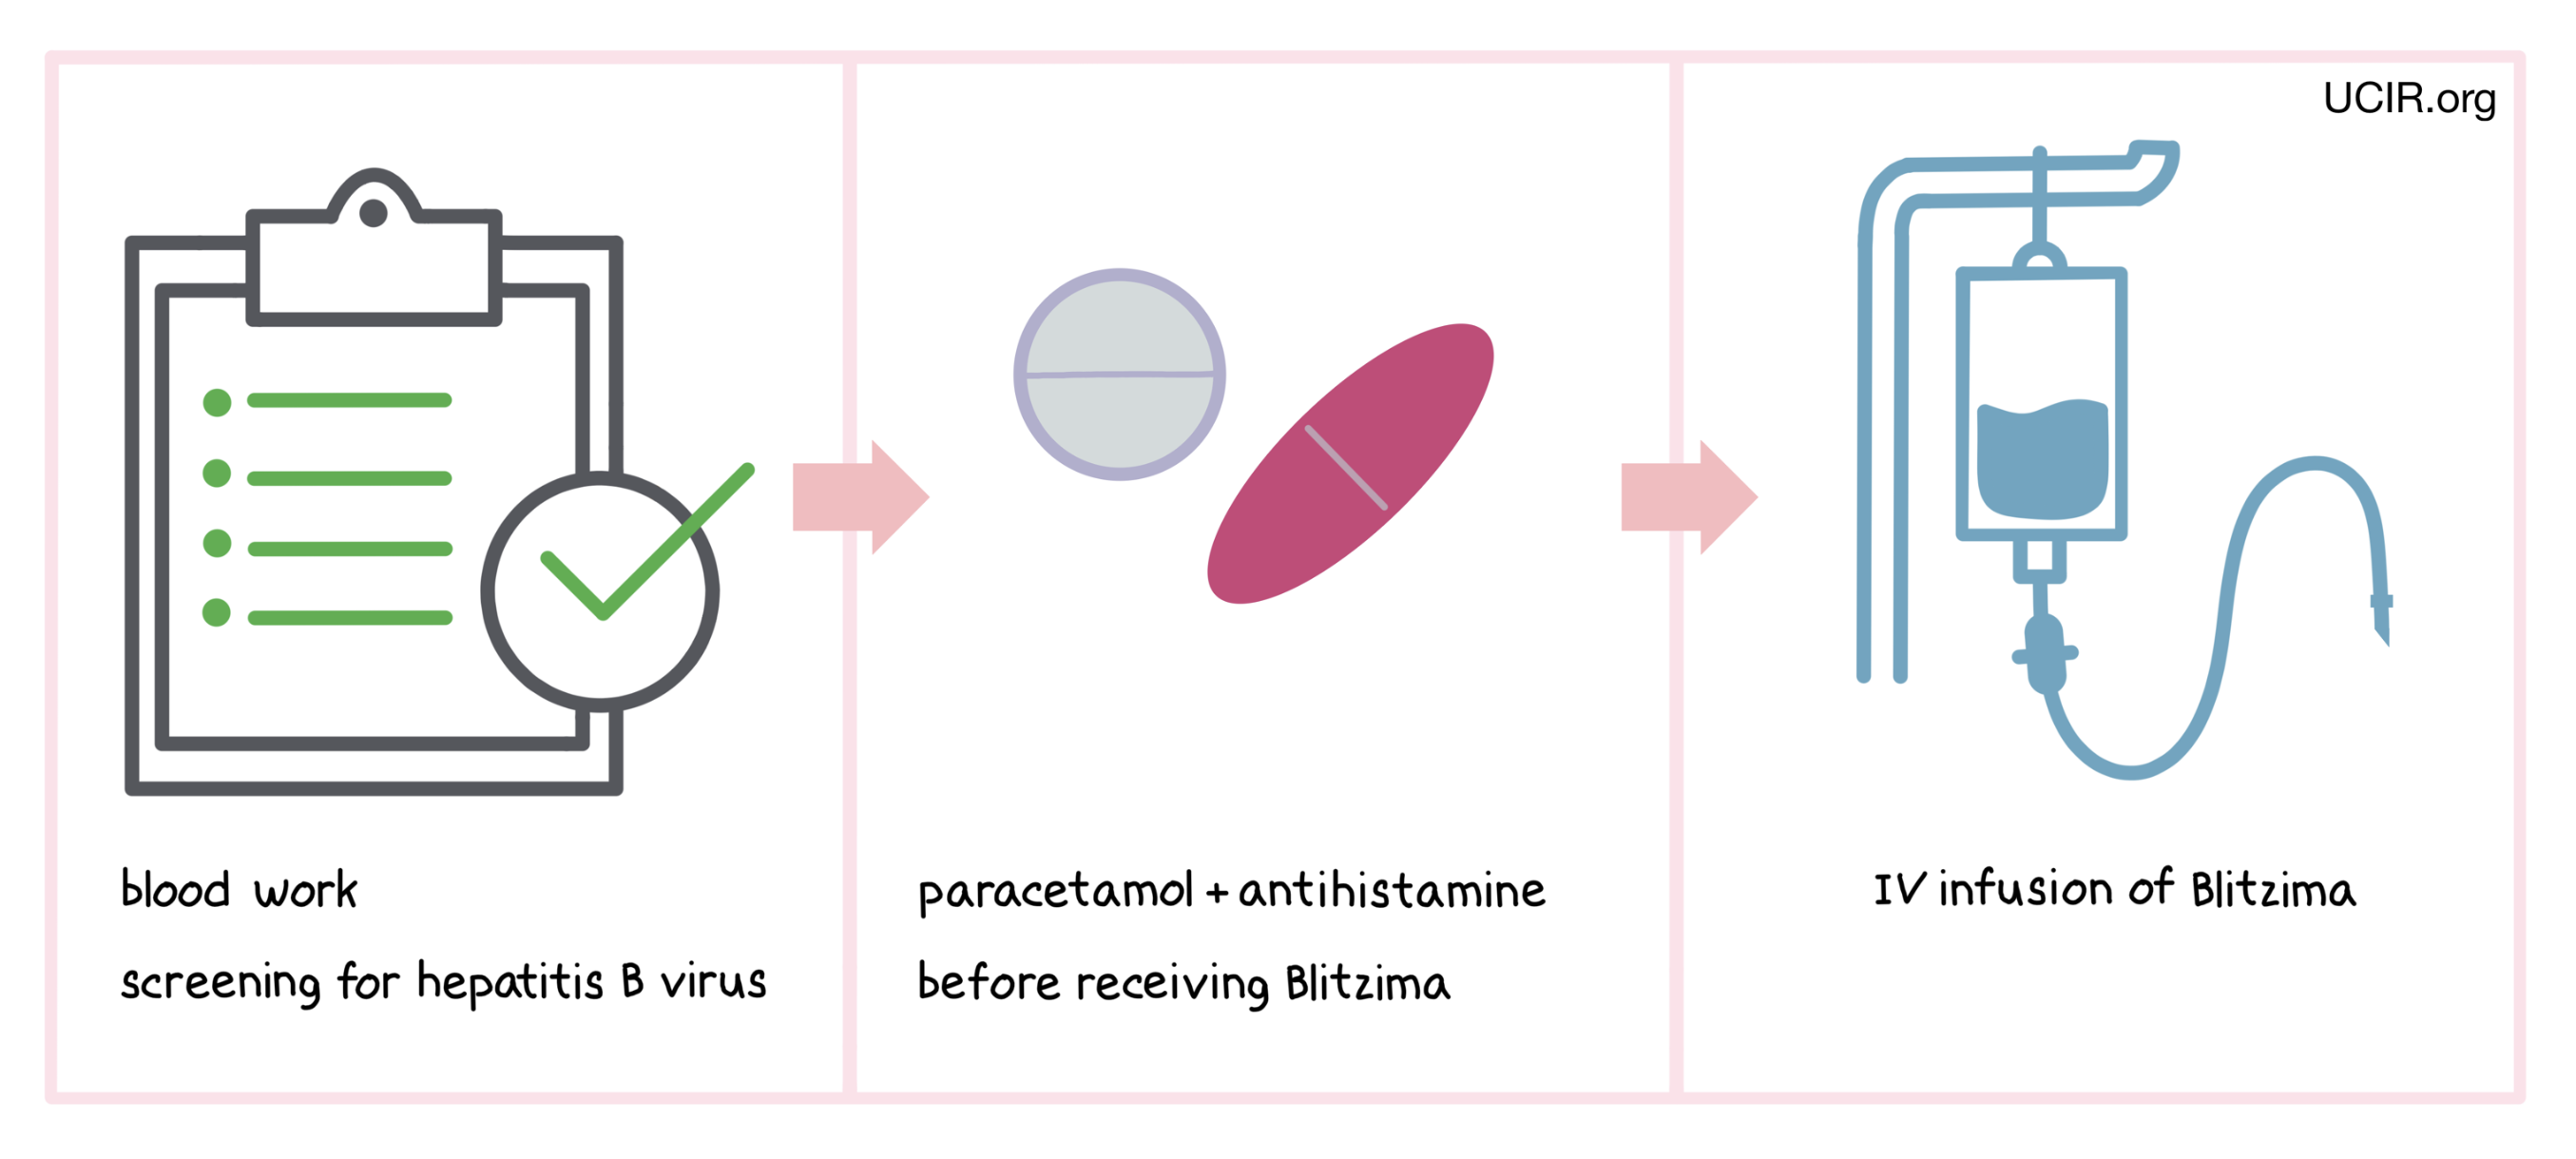 Illustration showing how Blitzima is administered to patients